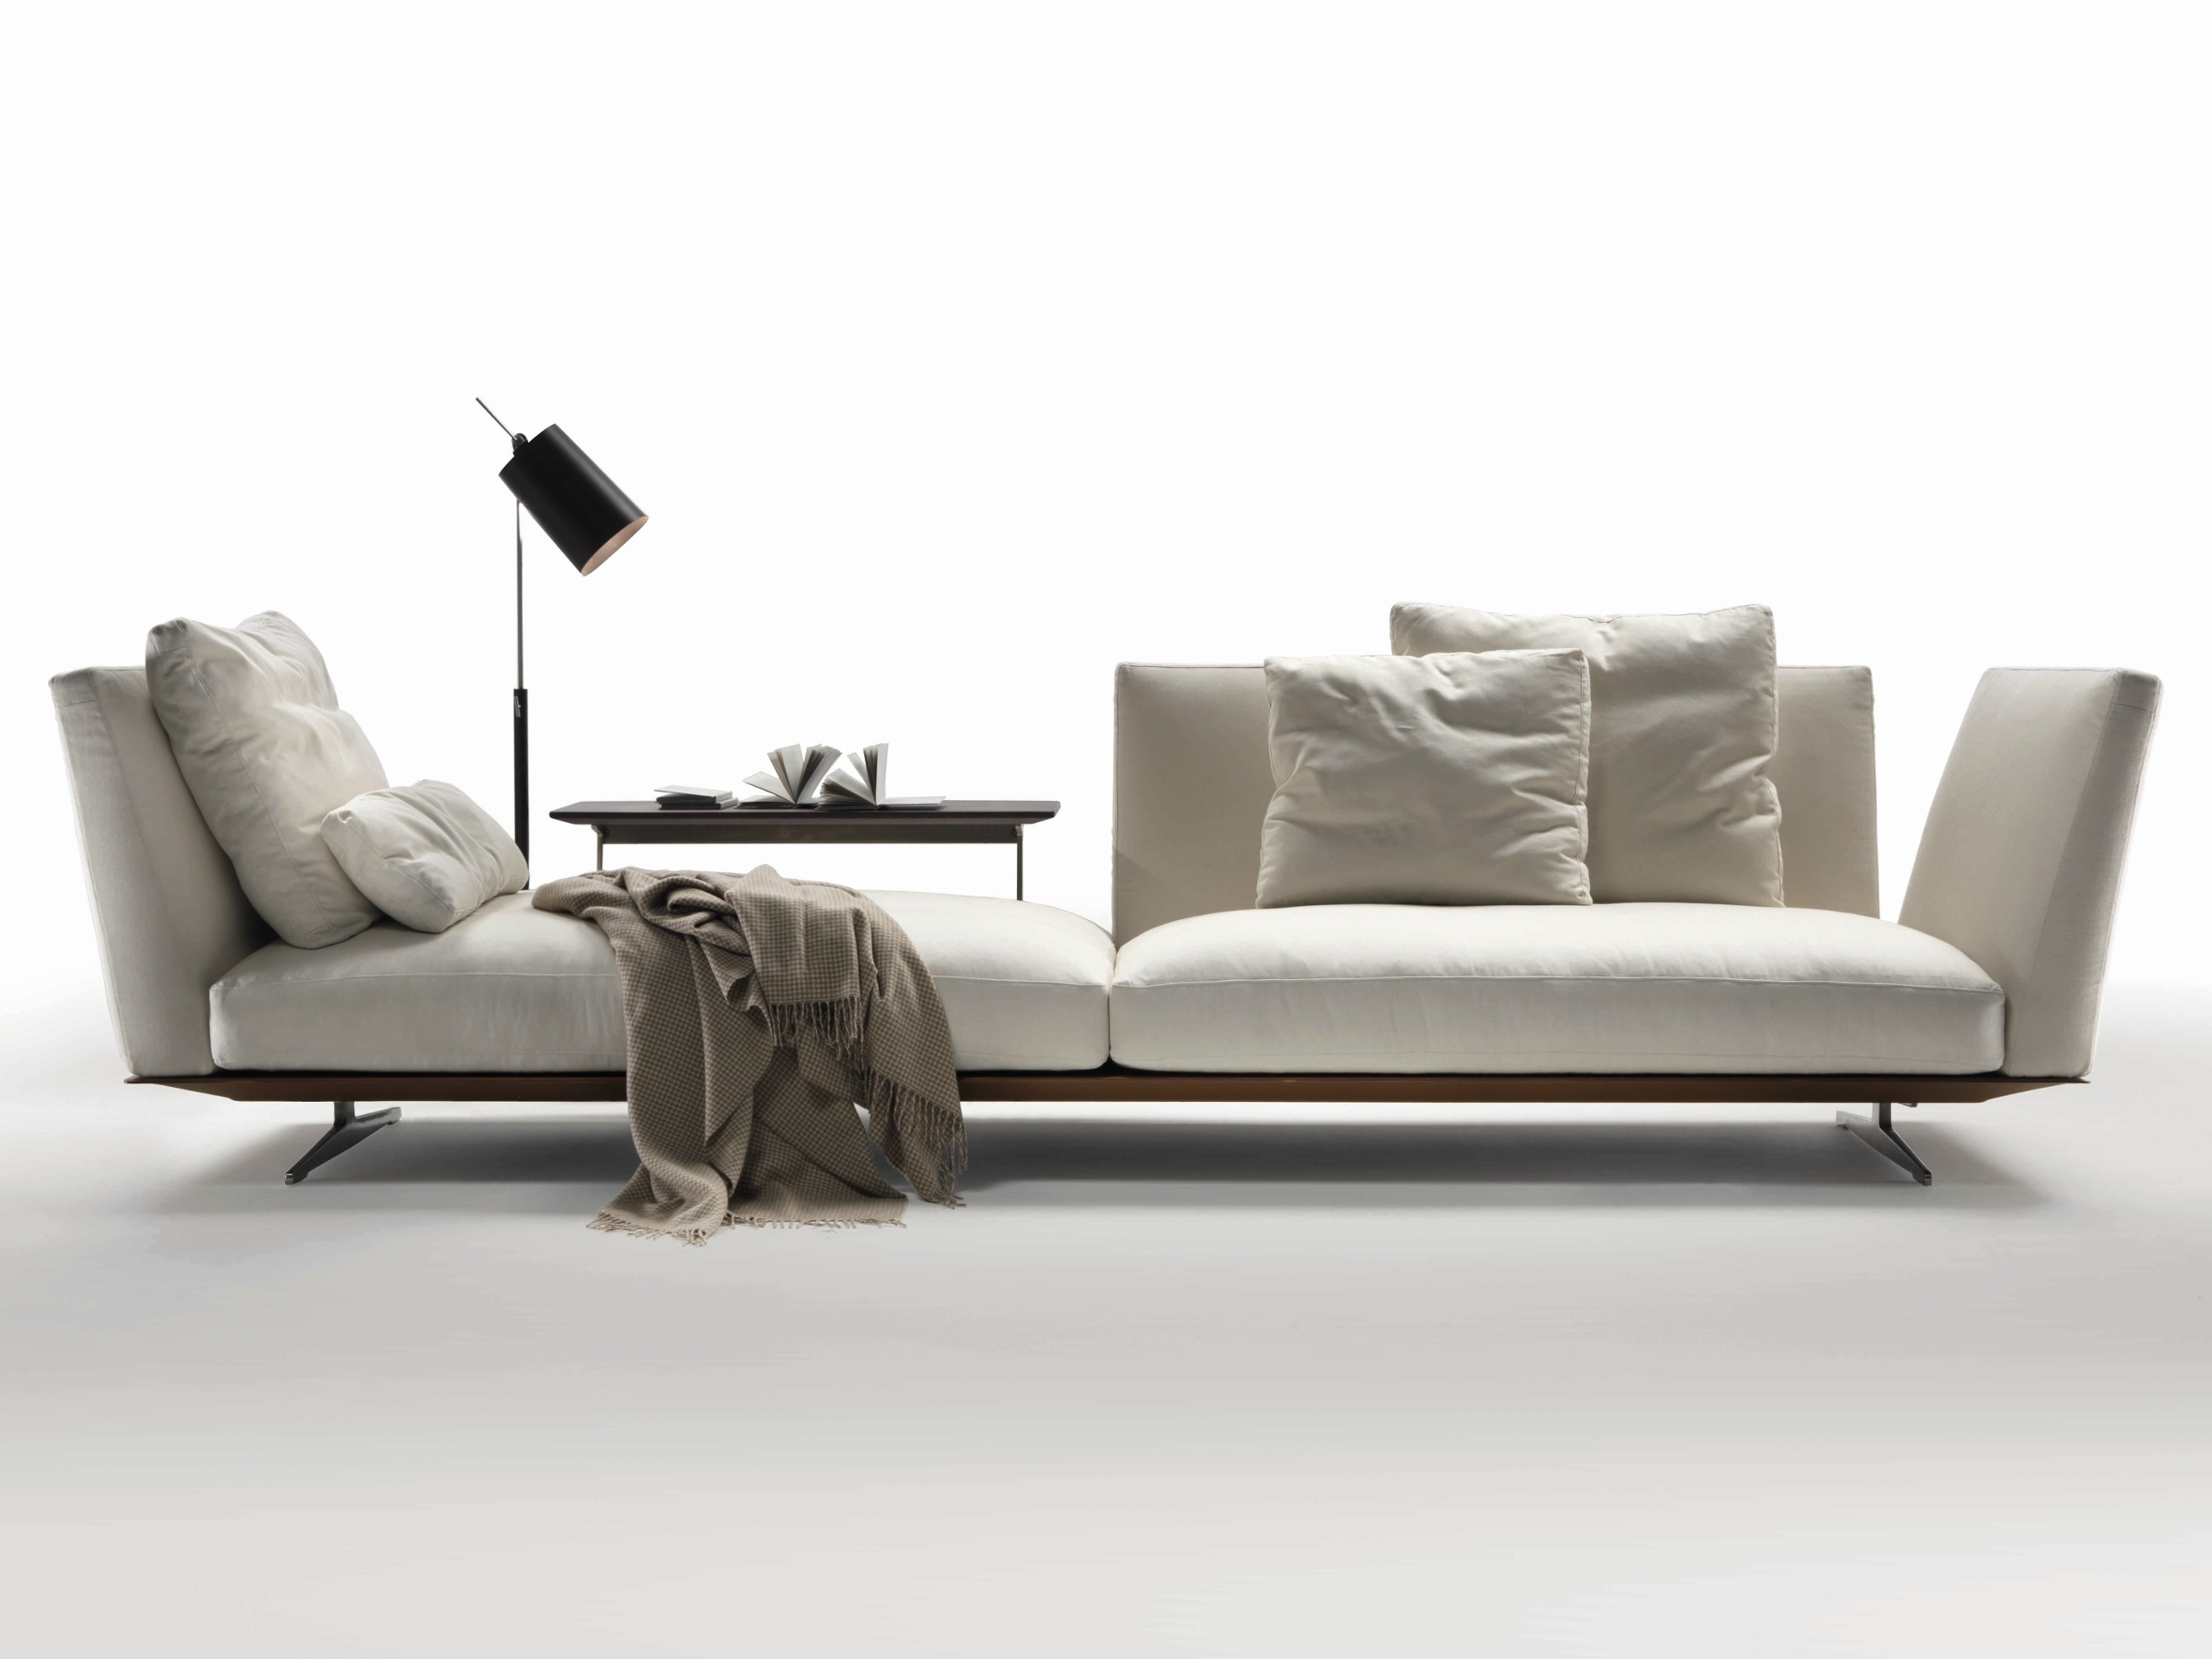 Preferred Flexform Sofas Throughout Flexform Sofas – Home Design Ideas And Pictures (View 11 of 15)